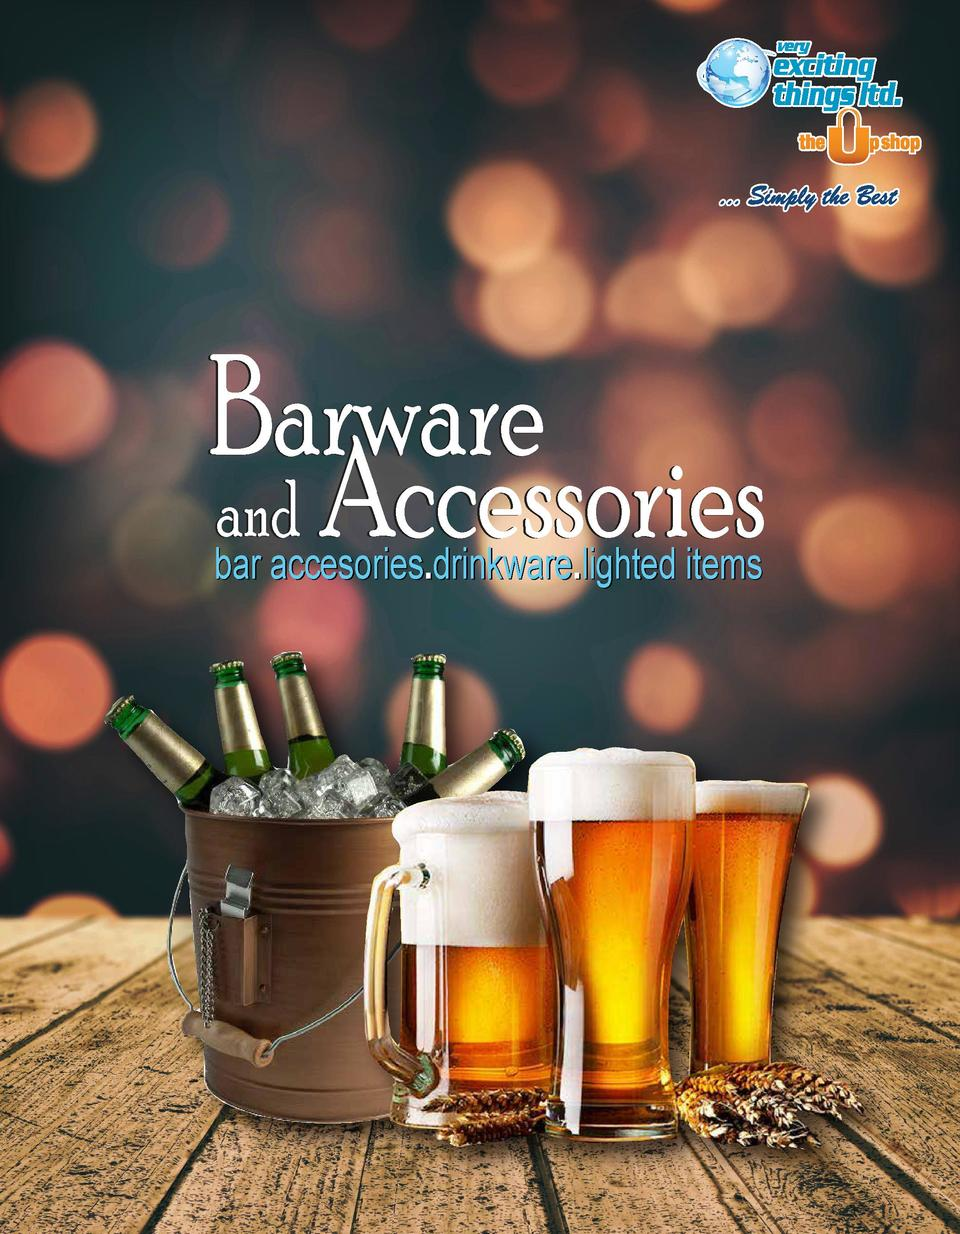 Barware and Accessories bar accesories.drinkware.lighted items